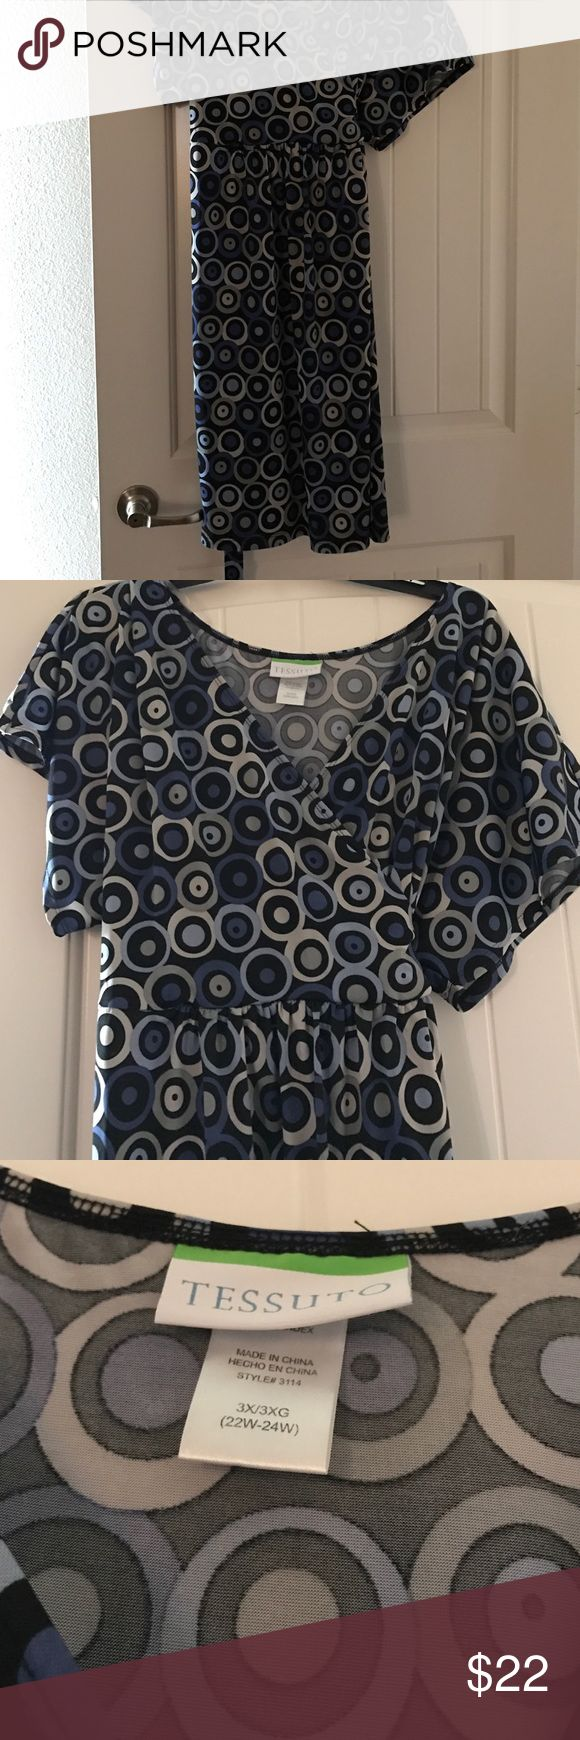 Tessuto chic wrap dress Beautiful silky soft like new wrap dress in circles of black blue and off white. Perfect for business or for going out depending on accessories. tessuto Dresses Midi